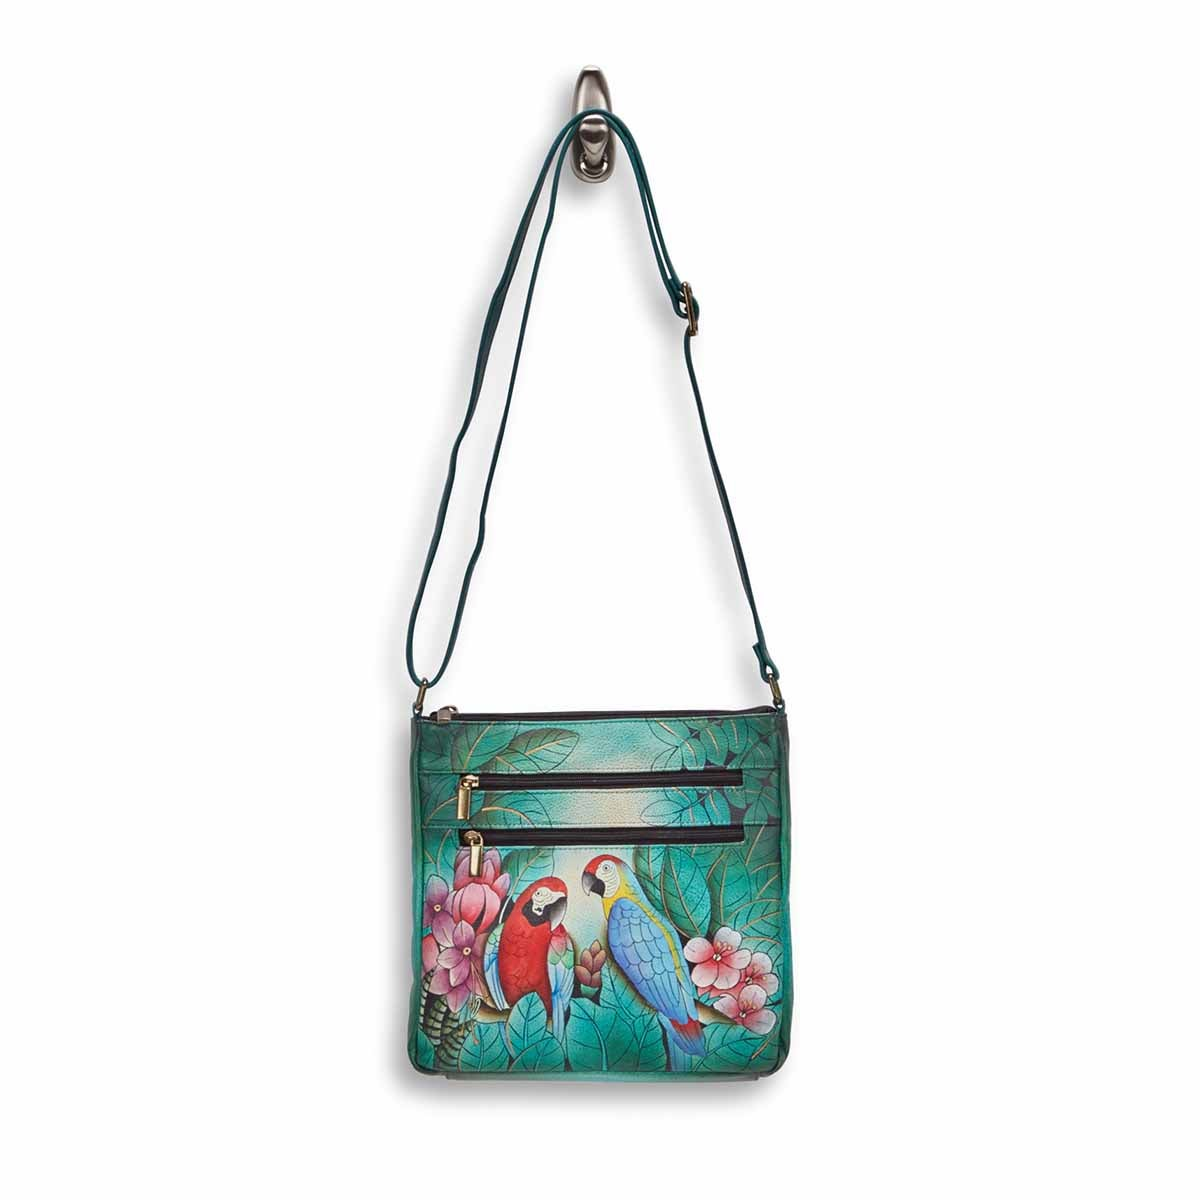 Painted lthr BrazilianBeauties crossbody